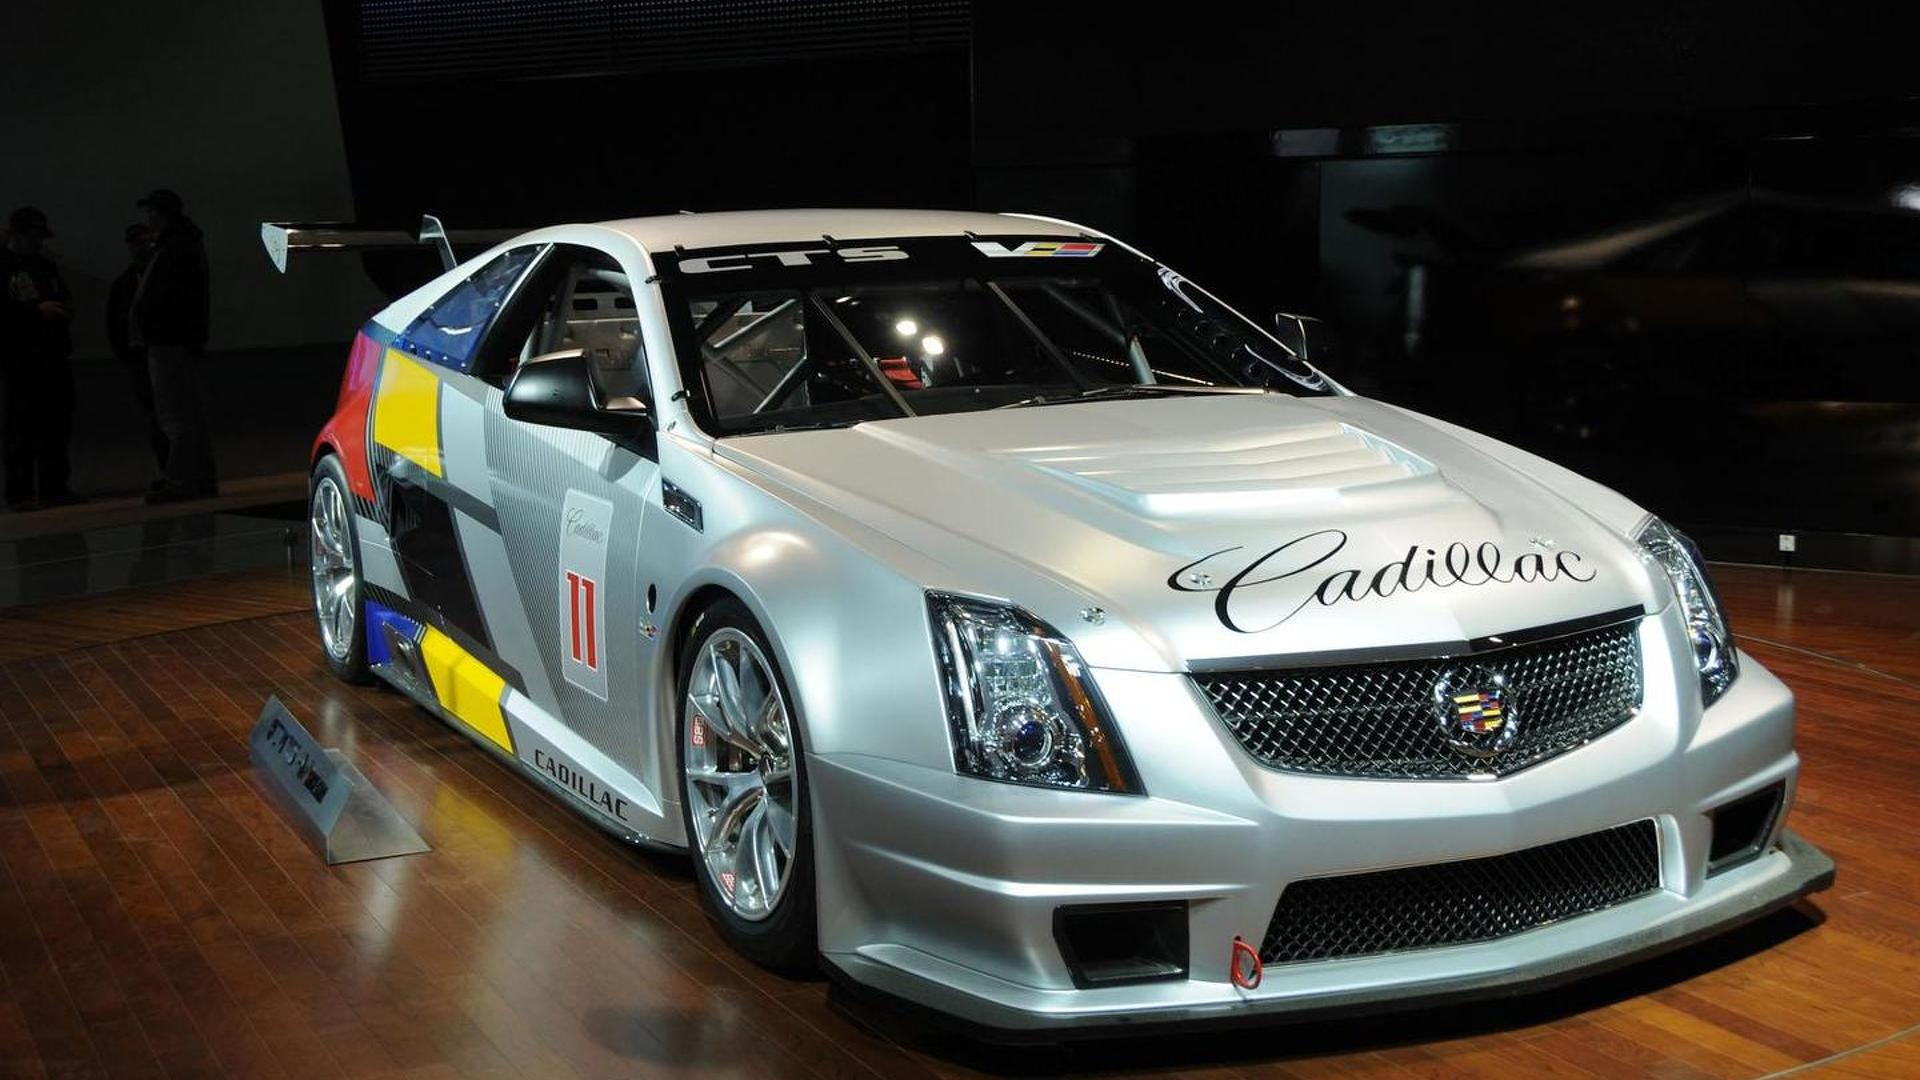 Cadillac CTS-V Racing Coupe crosses the finish line in Detroit